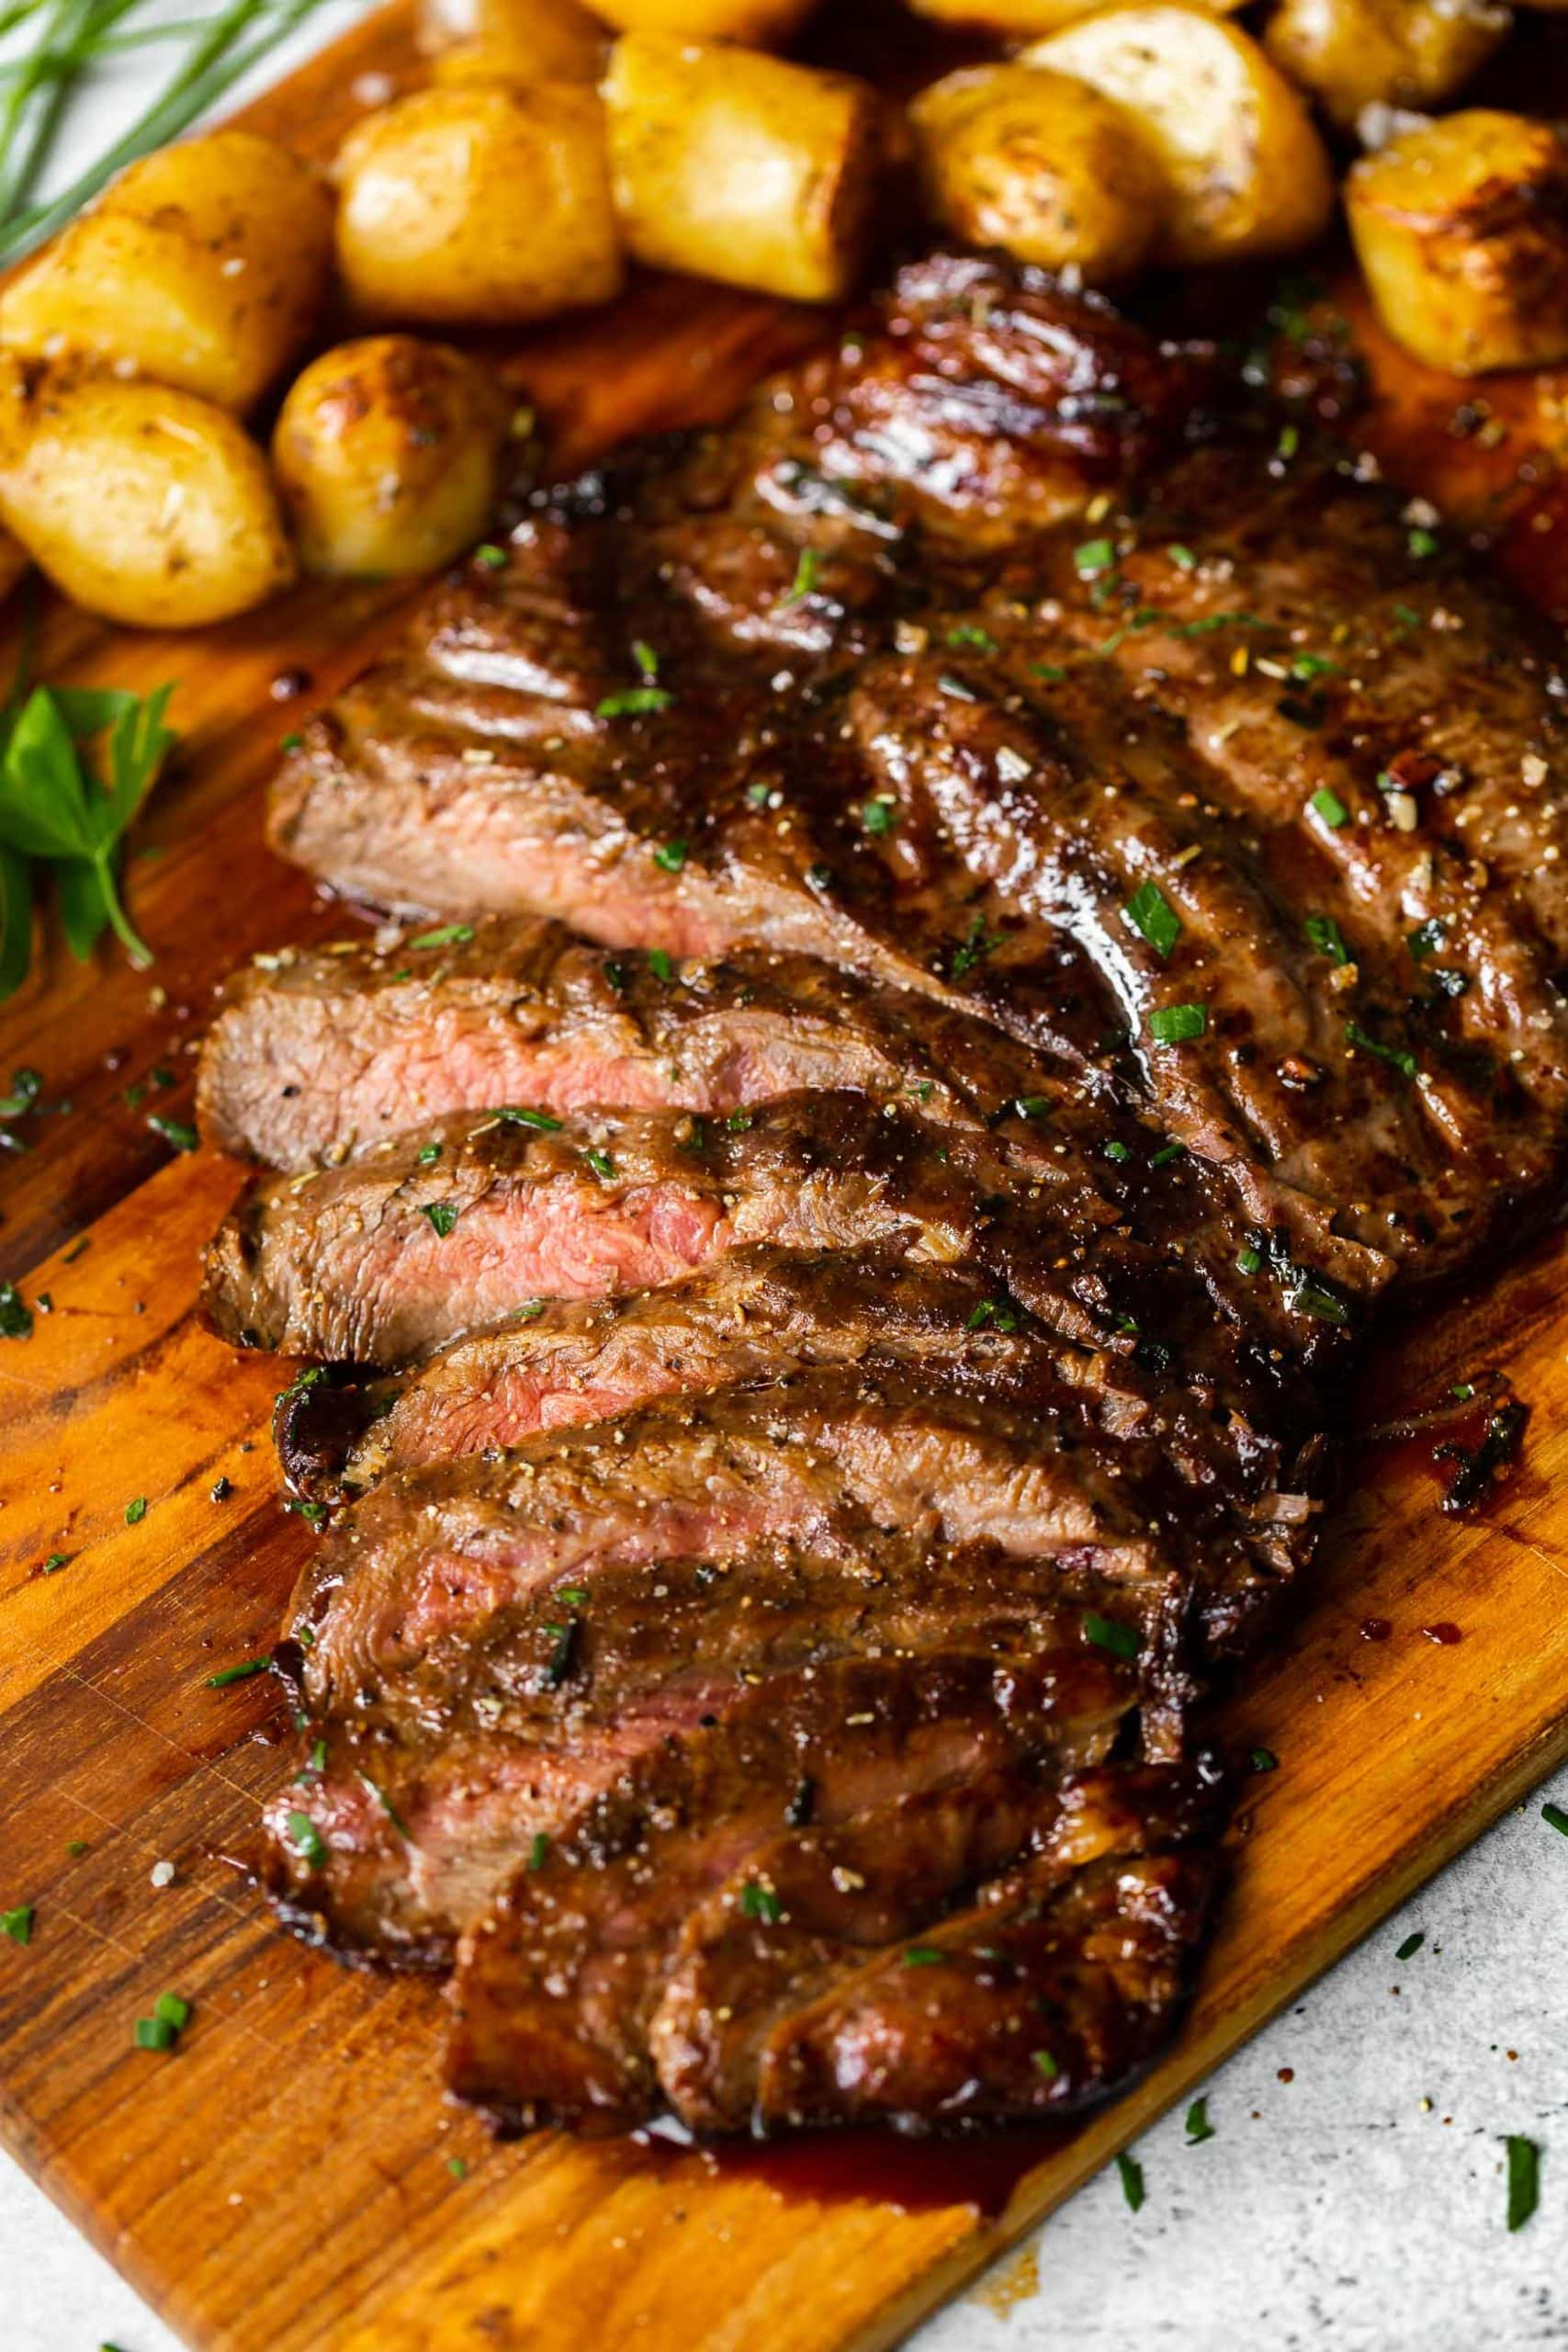 a sliced flank steak that has been cooked on a gas grill with a balsamic soy sauce marinade